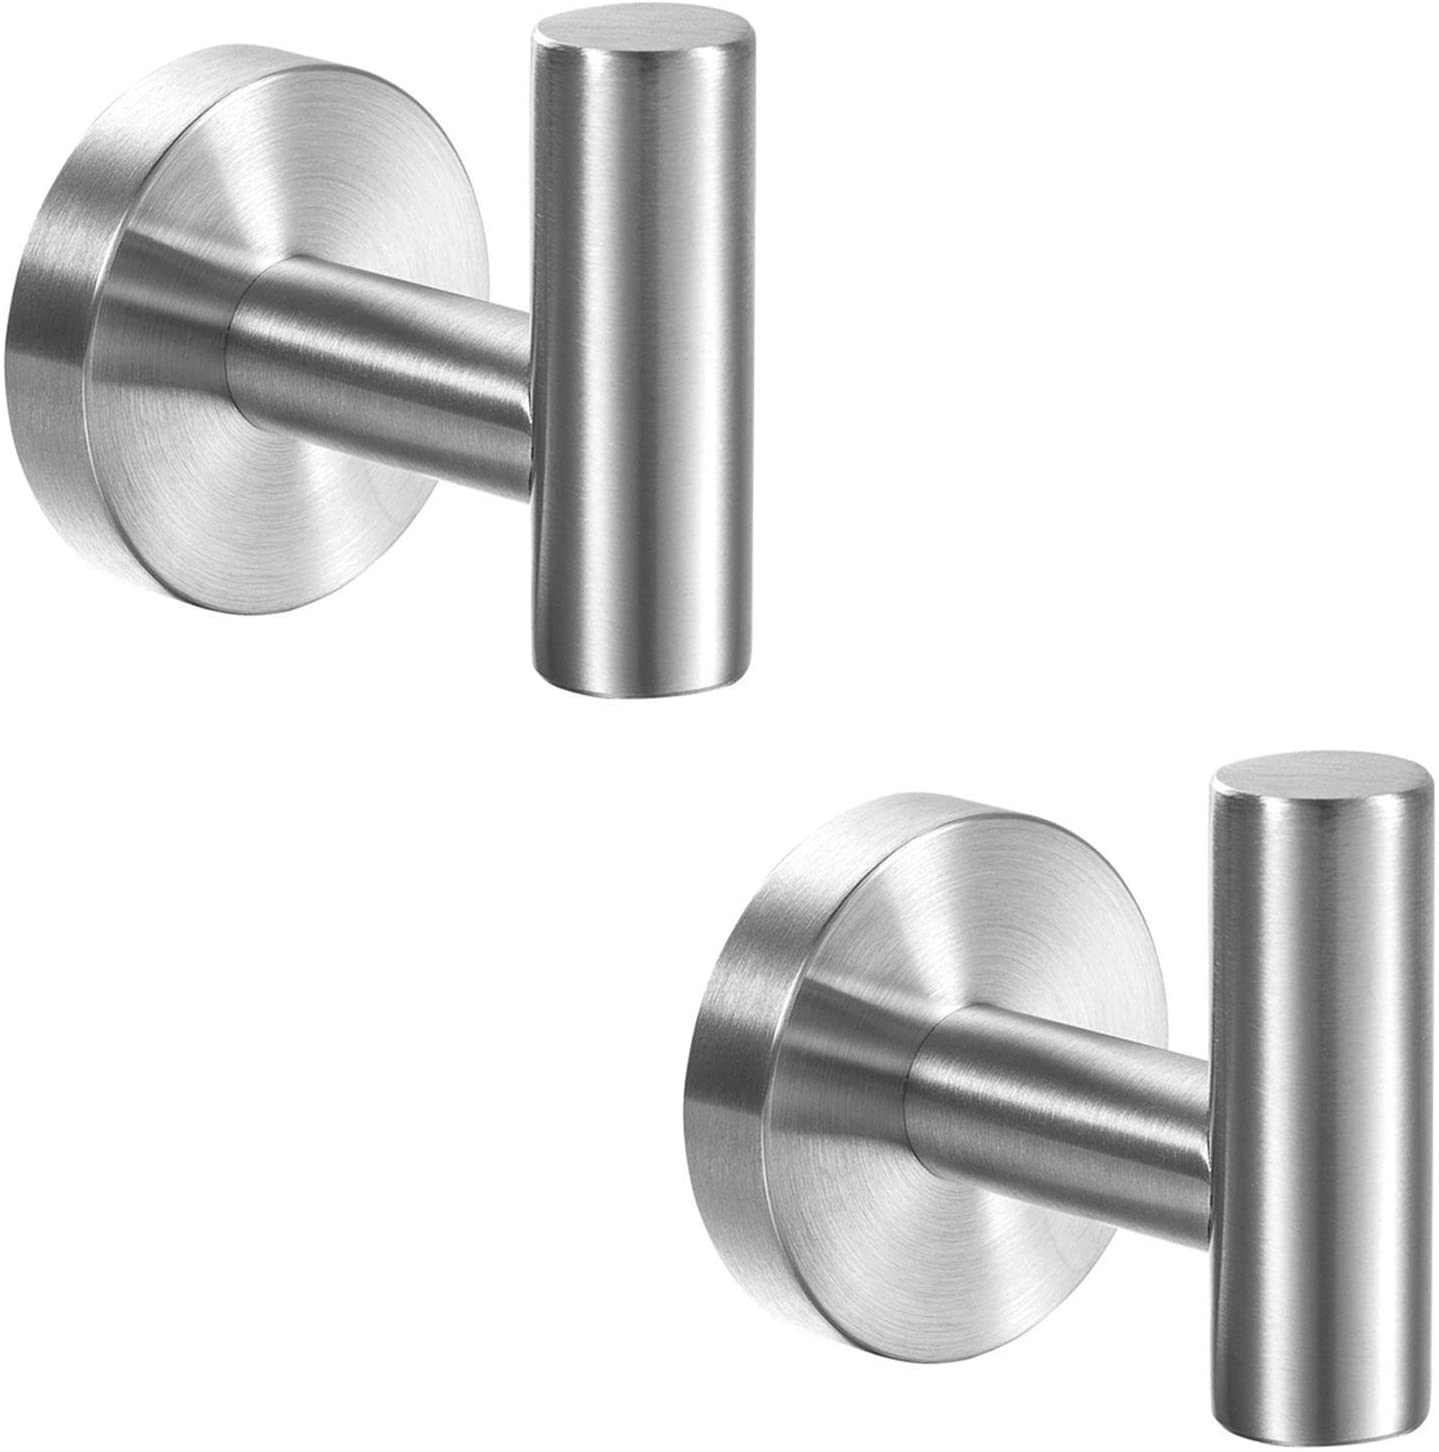 7. YGIVO 2 Pack Towel Hooks, with Brushed Nickel SUS304